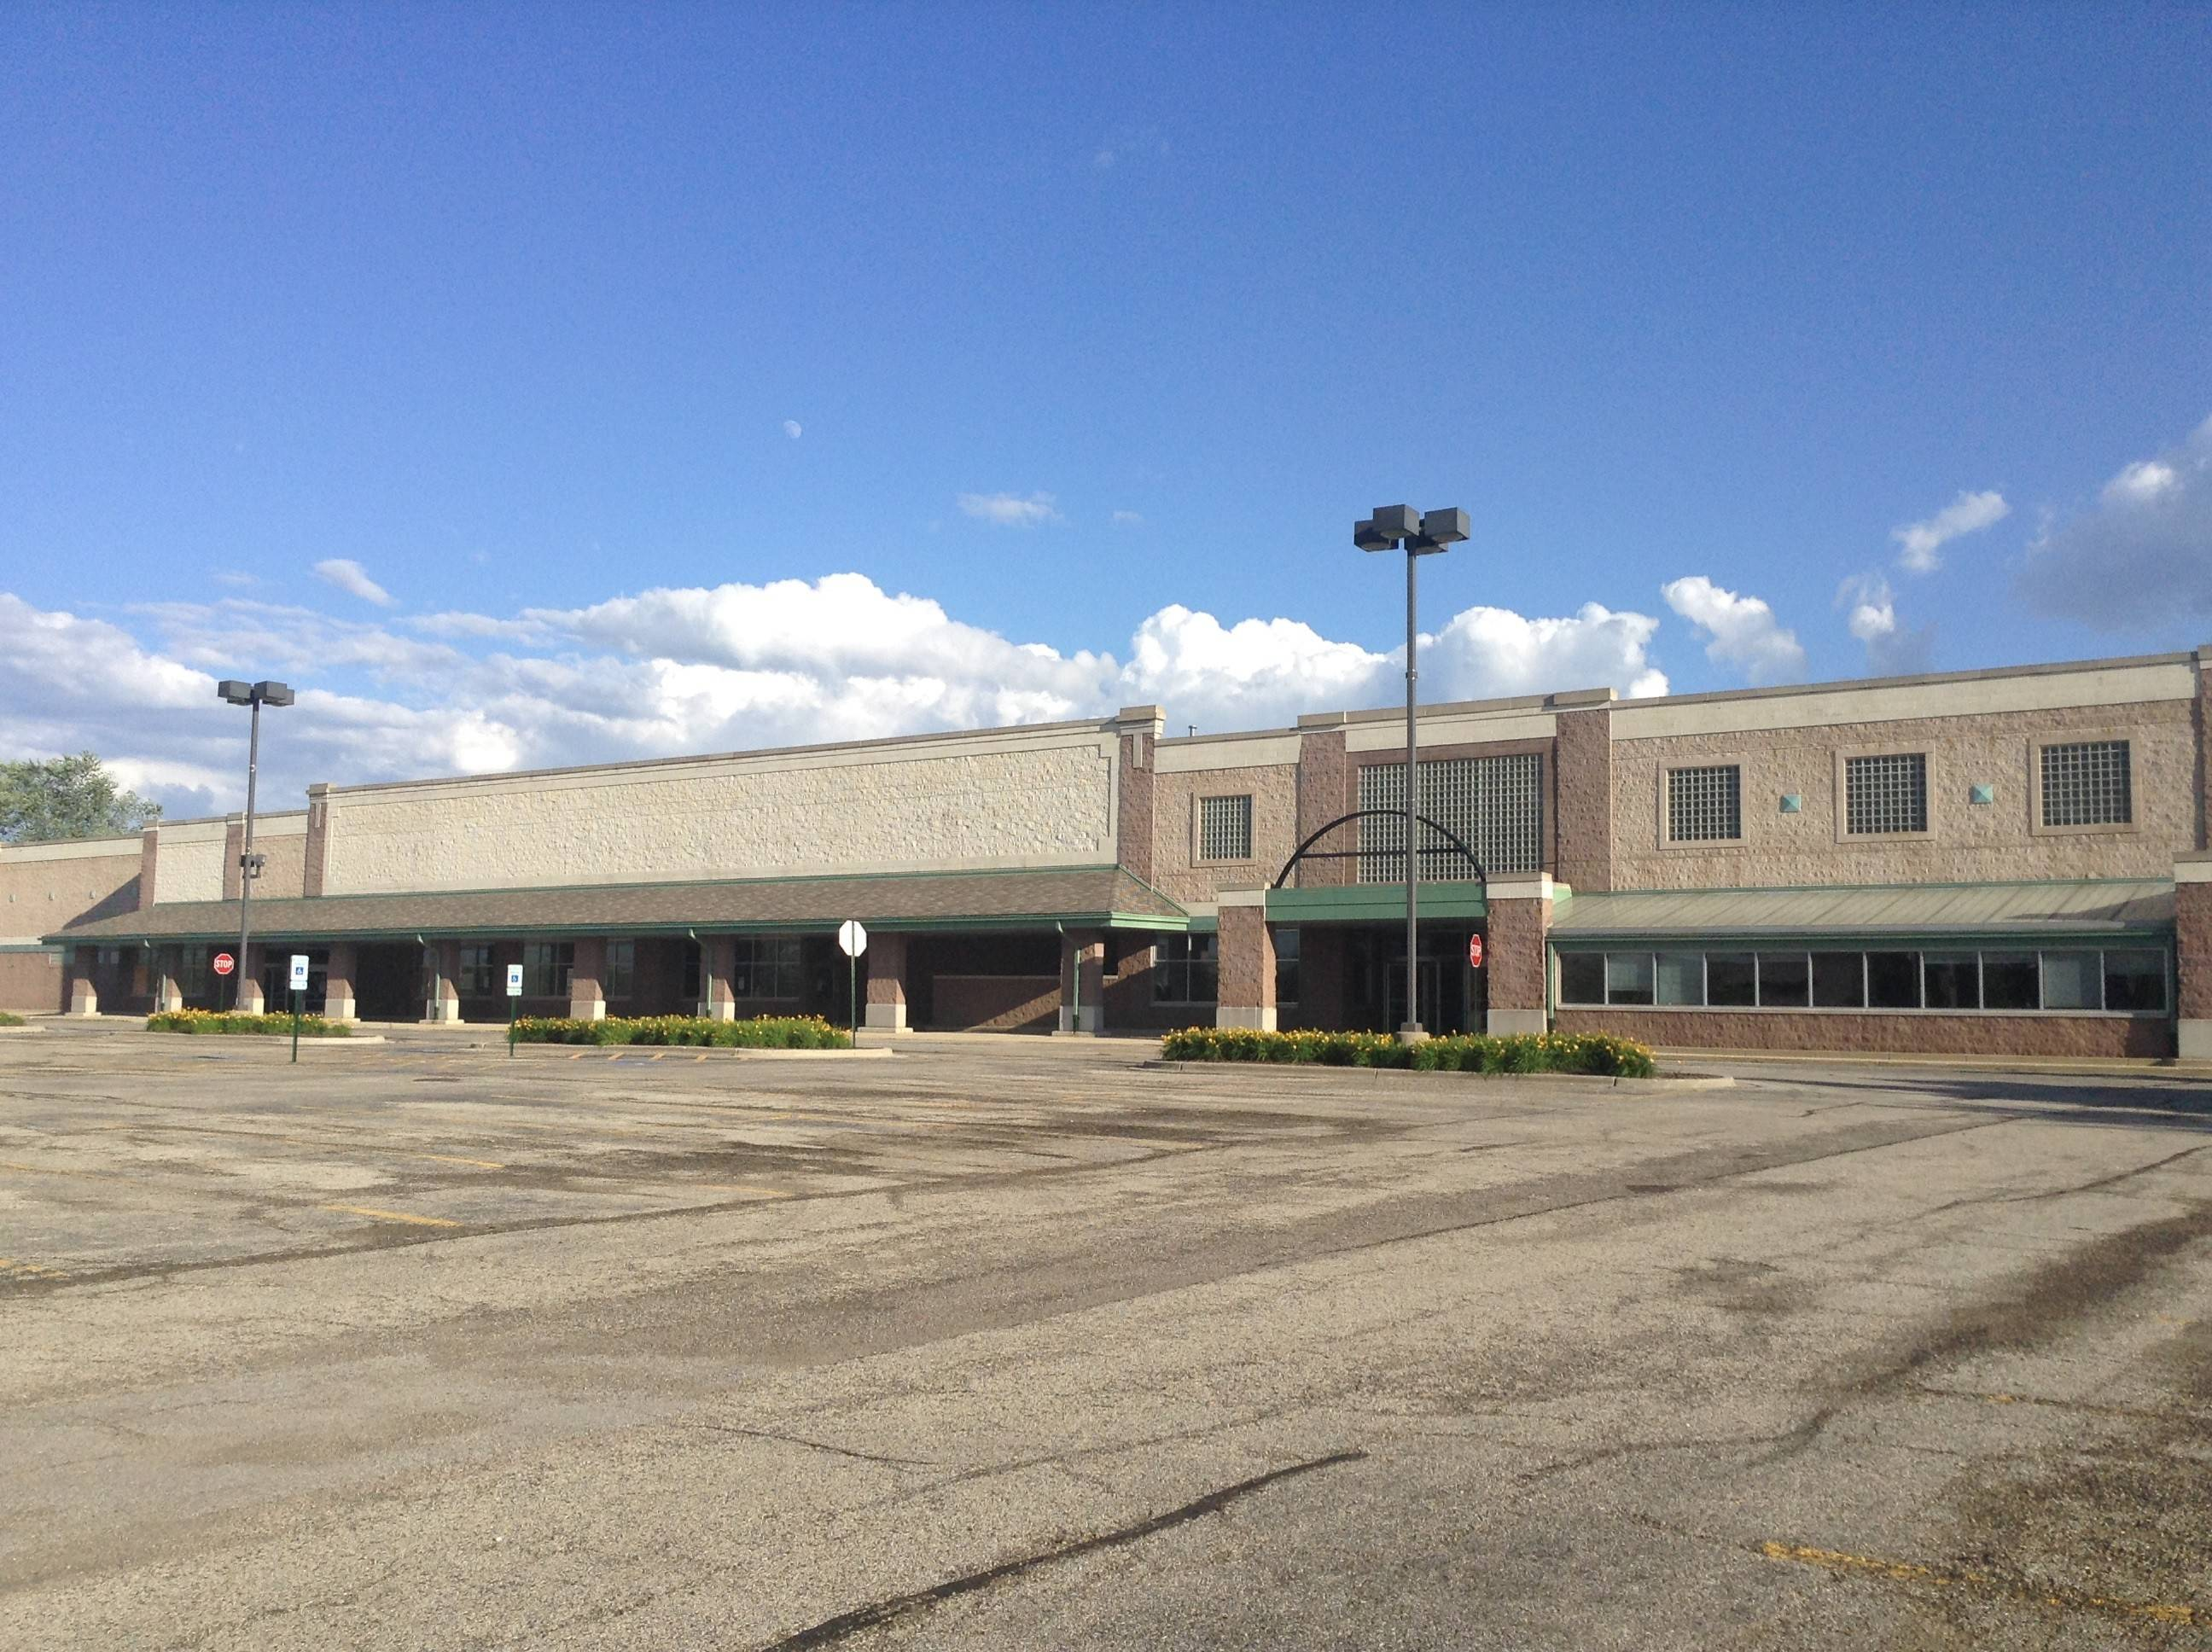 New tenant found for Dominick's site in Wauconda